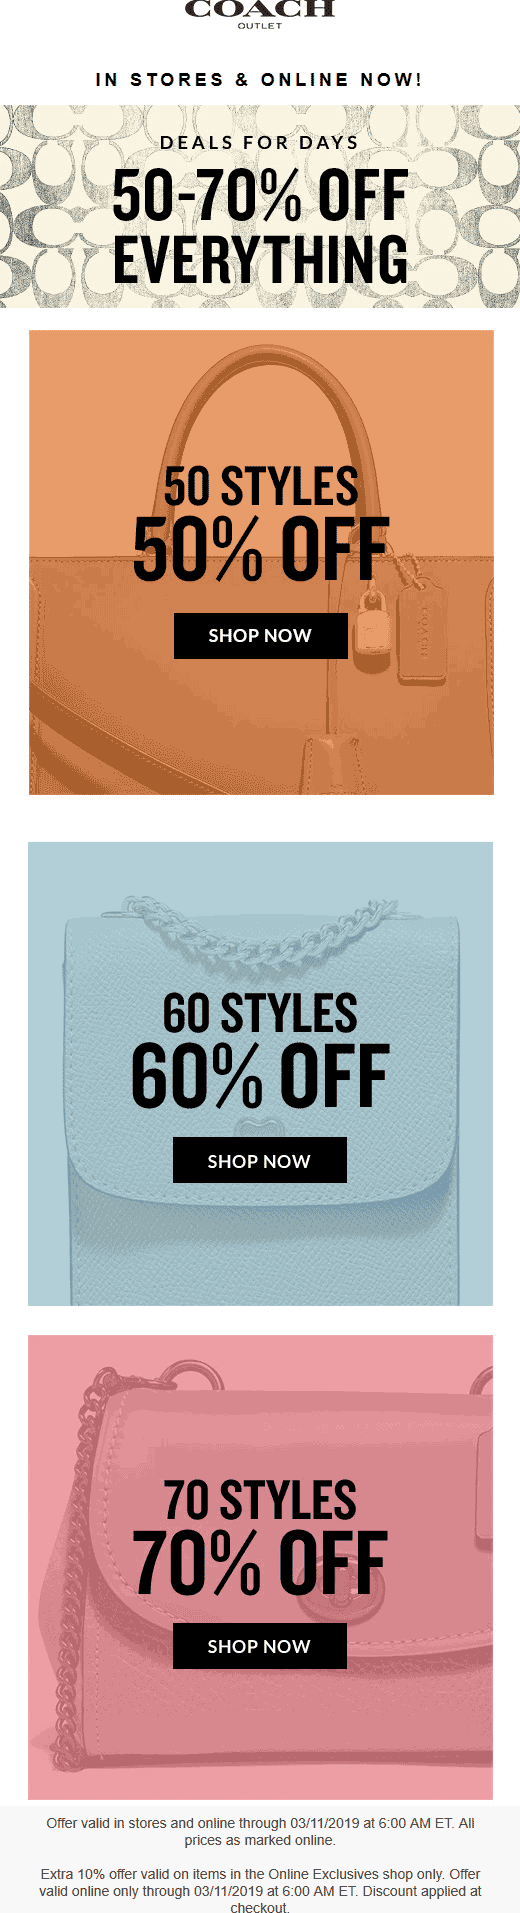 Coach Outlet Coupon August 2019 50-70% off everything at Coach Outlet, ditto online